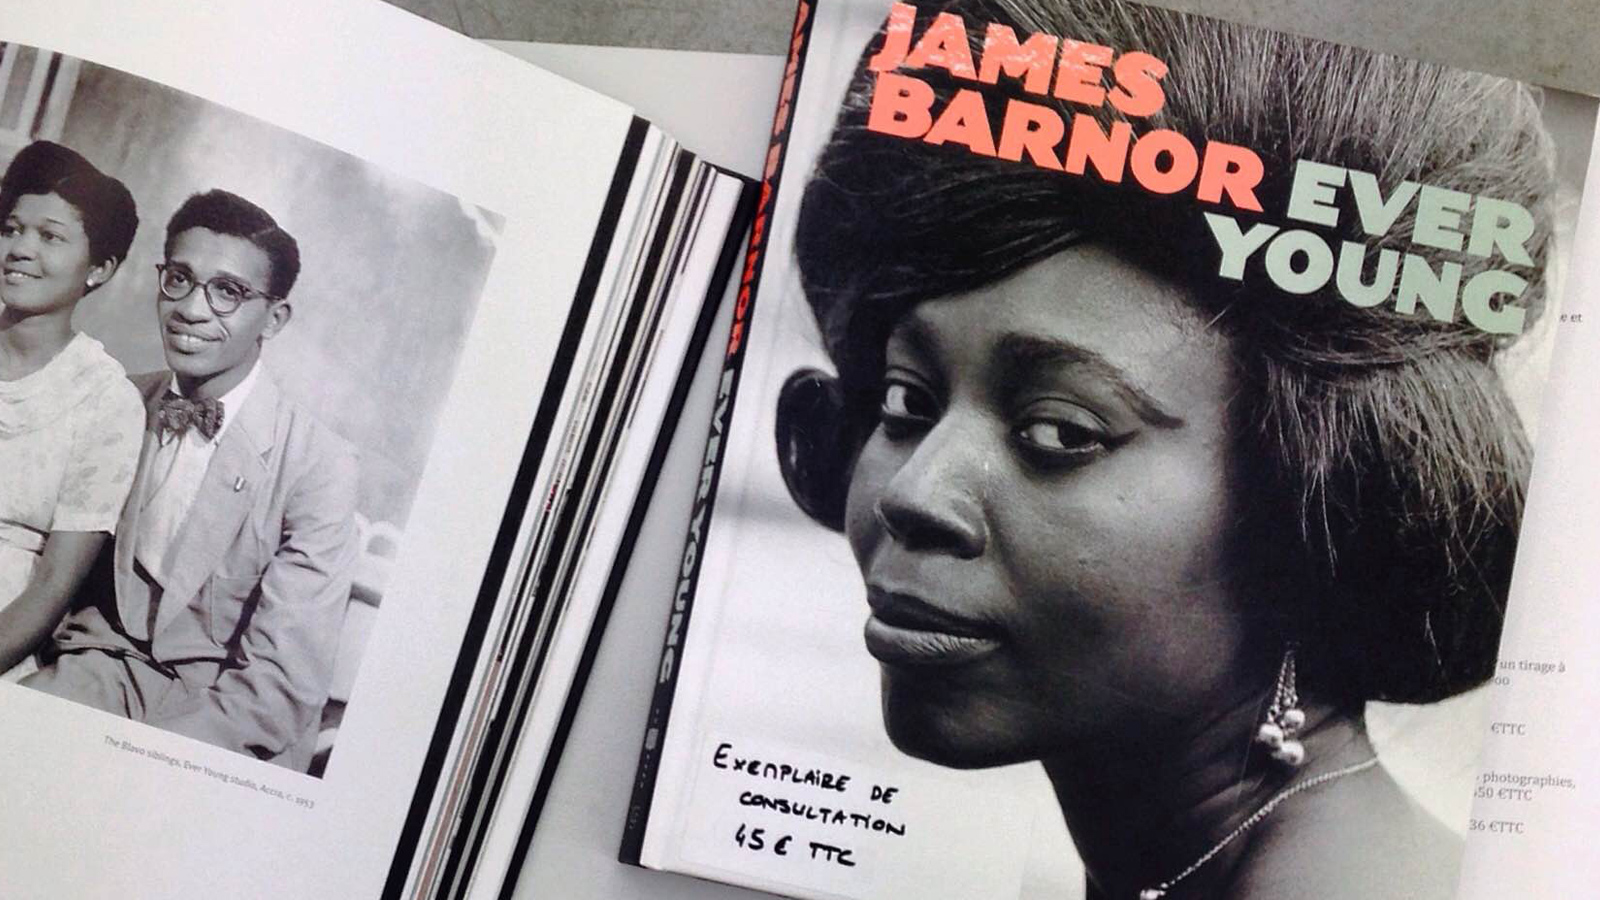 Ever Young book, James Barnor